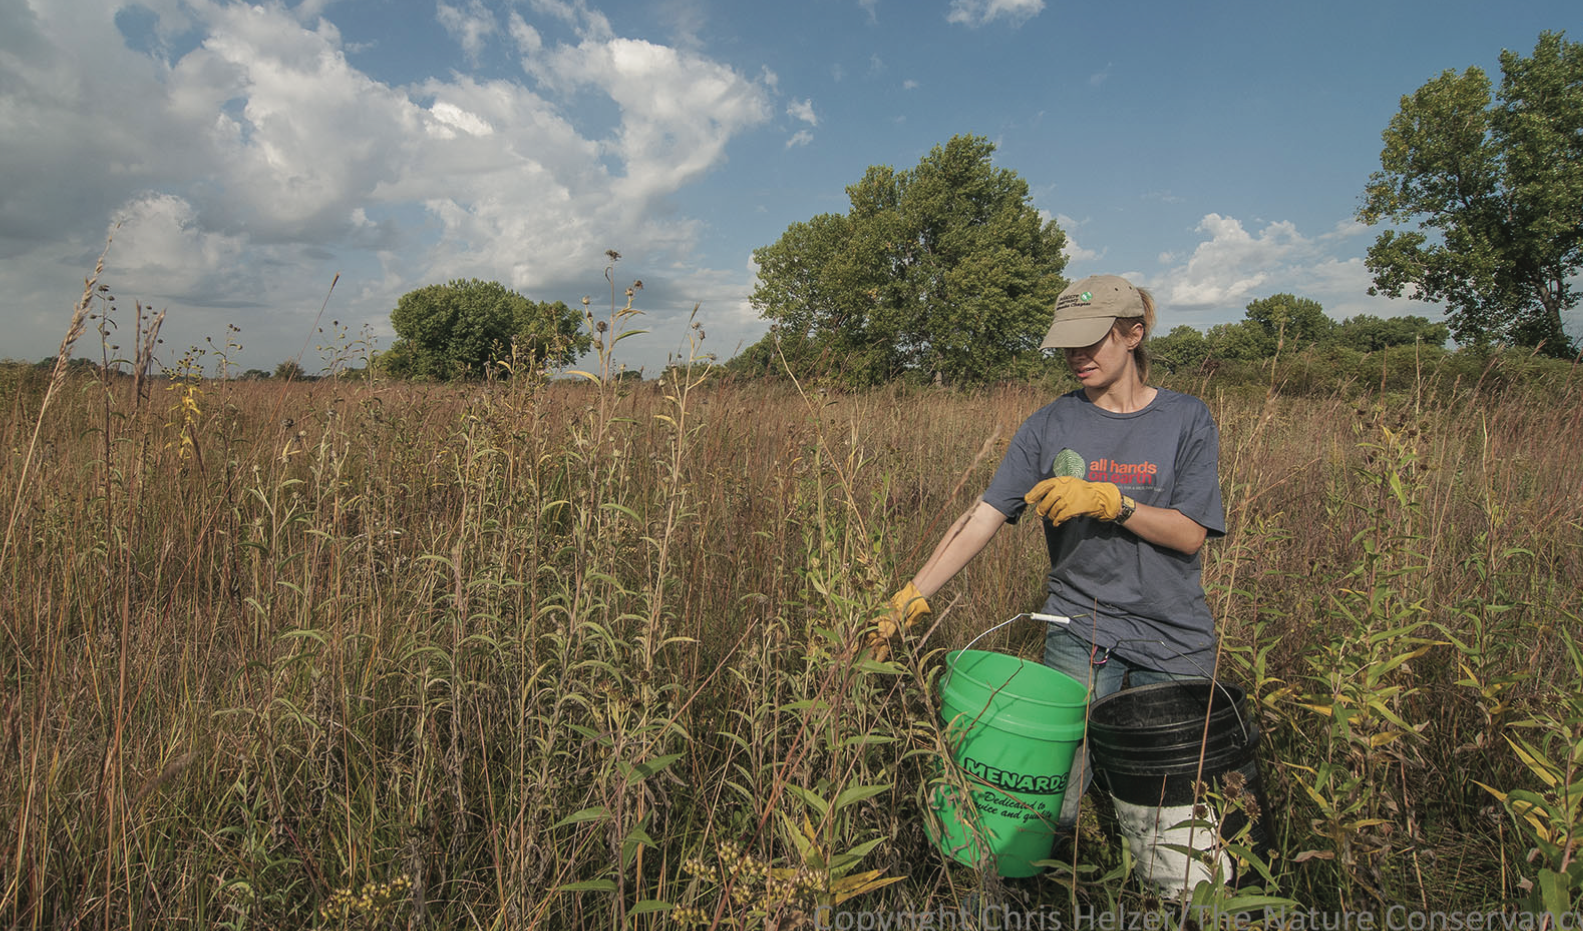 Seed collection for seed banking and grassland restoration is essential to future conservation efforts. We will look to our friends and colleagues in the Midwest who have been leading the way for decades. Photo: Chris Helzer.